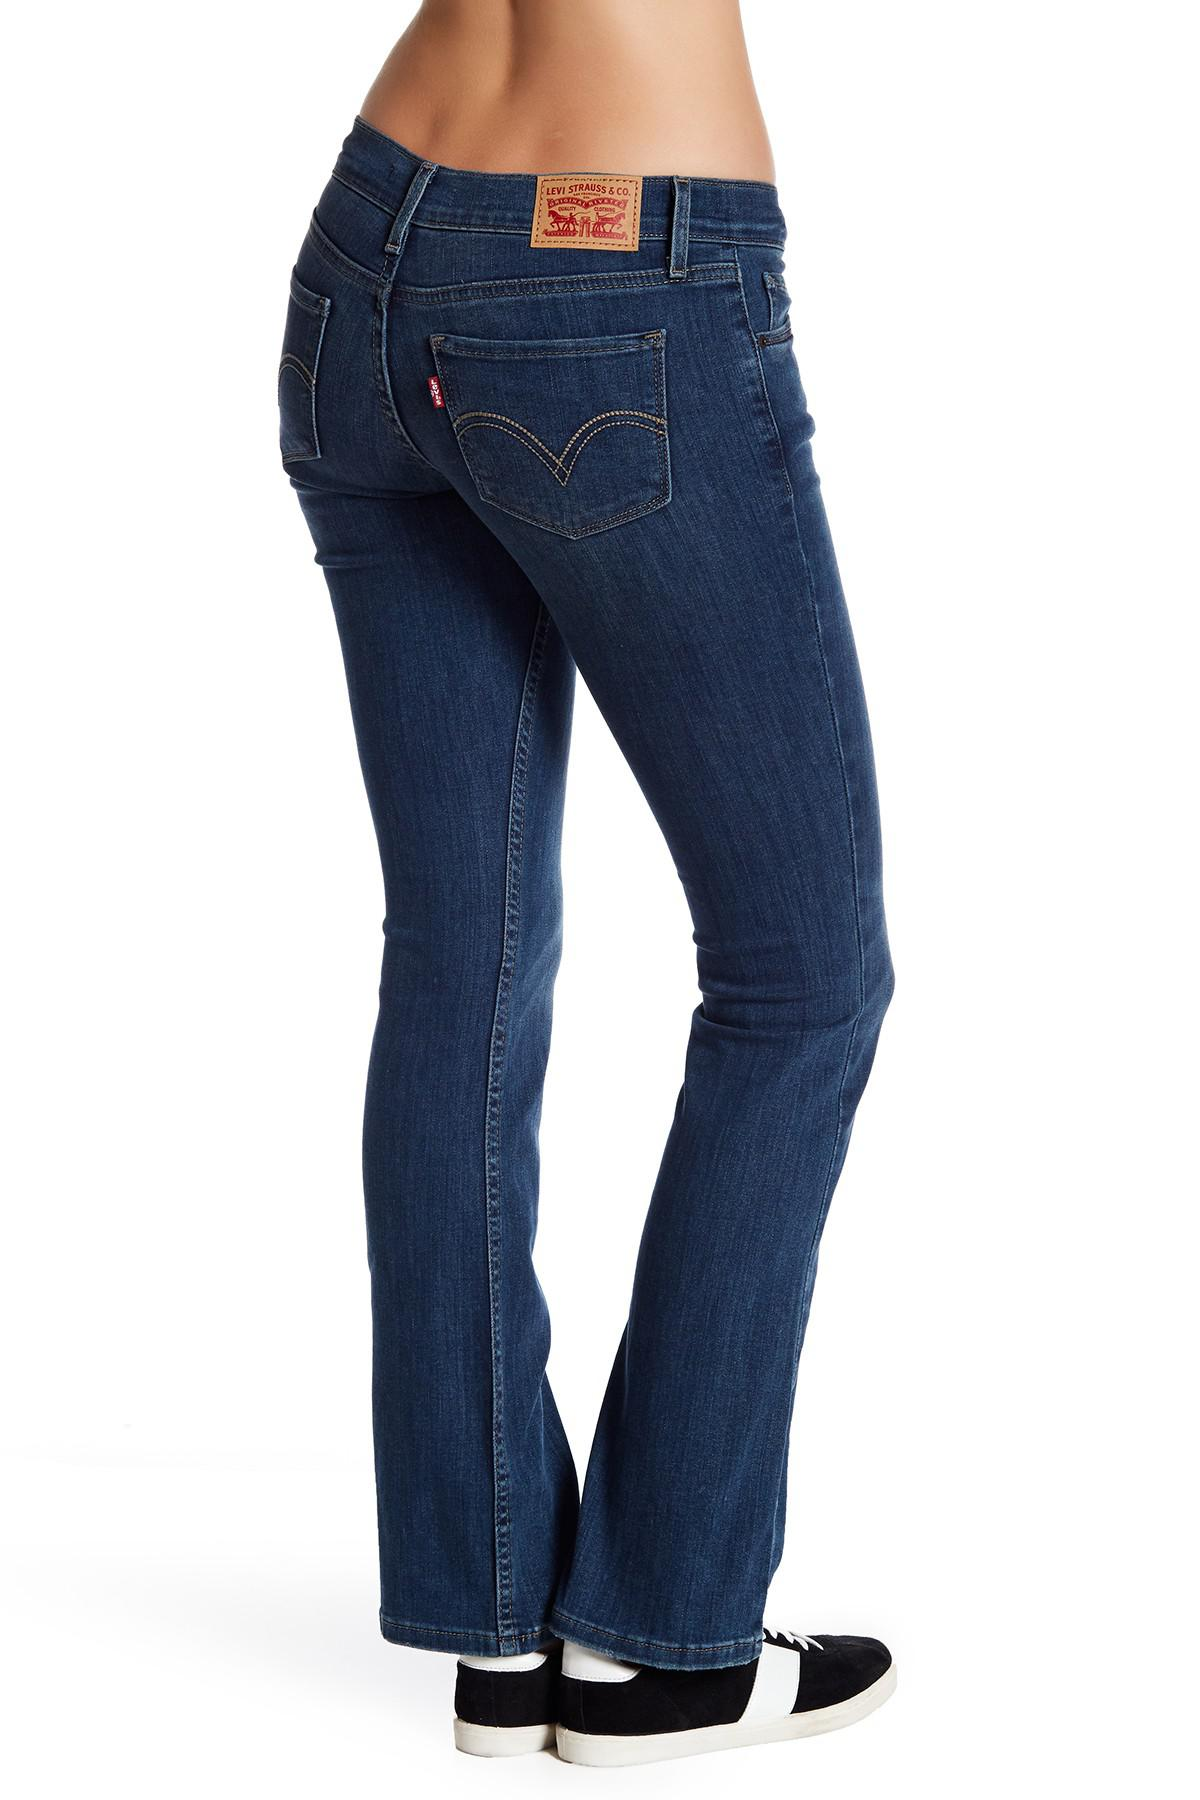 Levi's 524 too superlow bootcut jeans sale